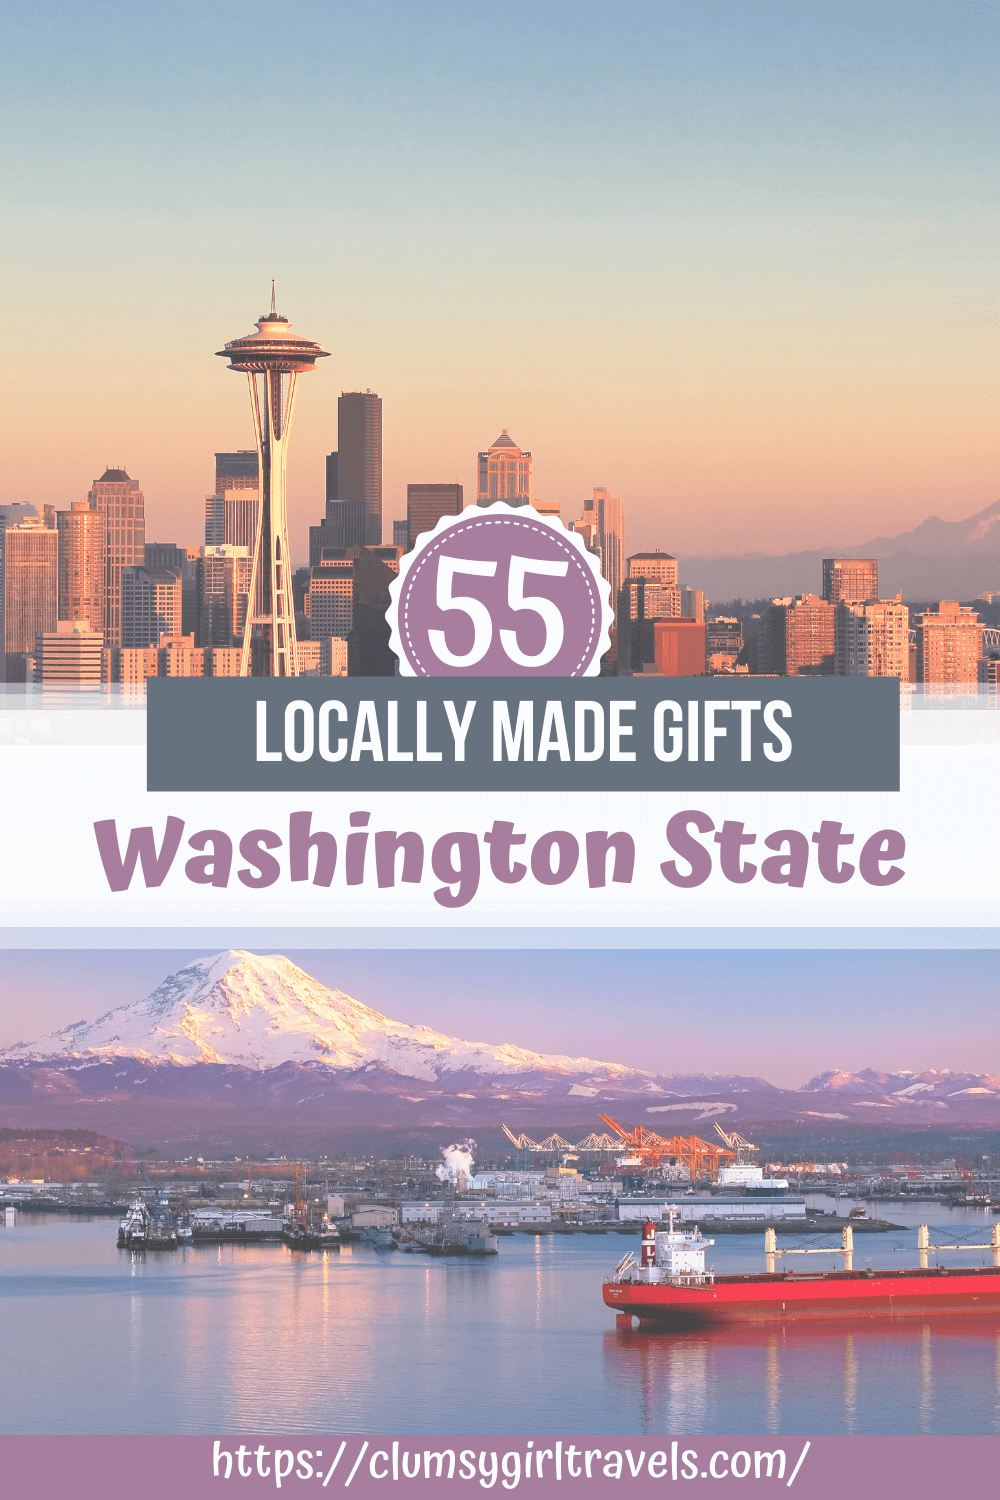 This guide will show you the best gifts made in Washington State, so that you can shop locally & sustainable.